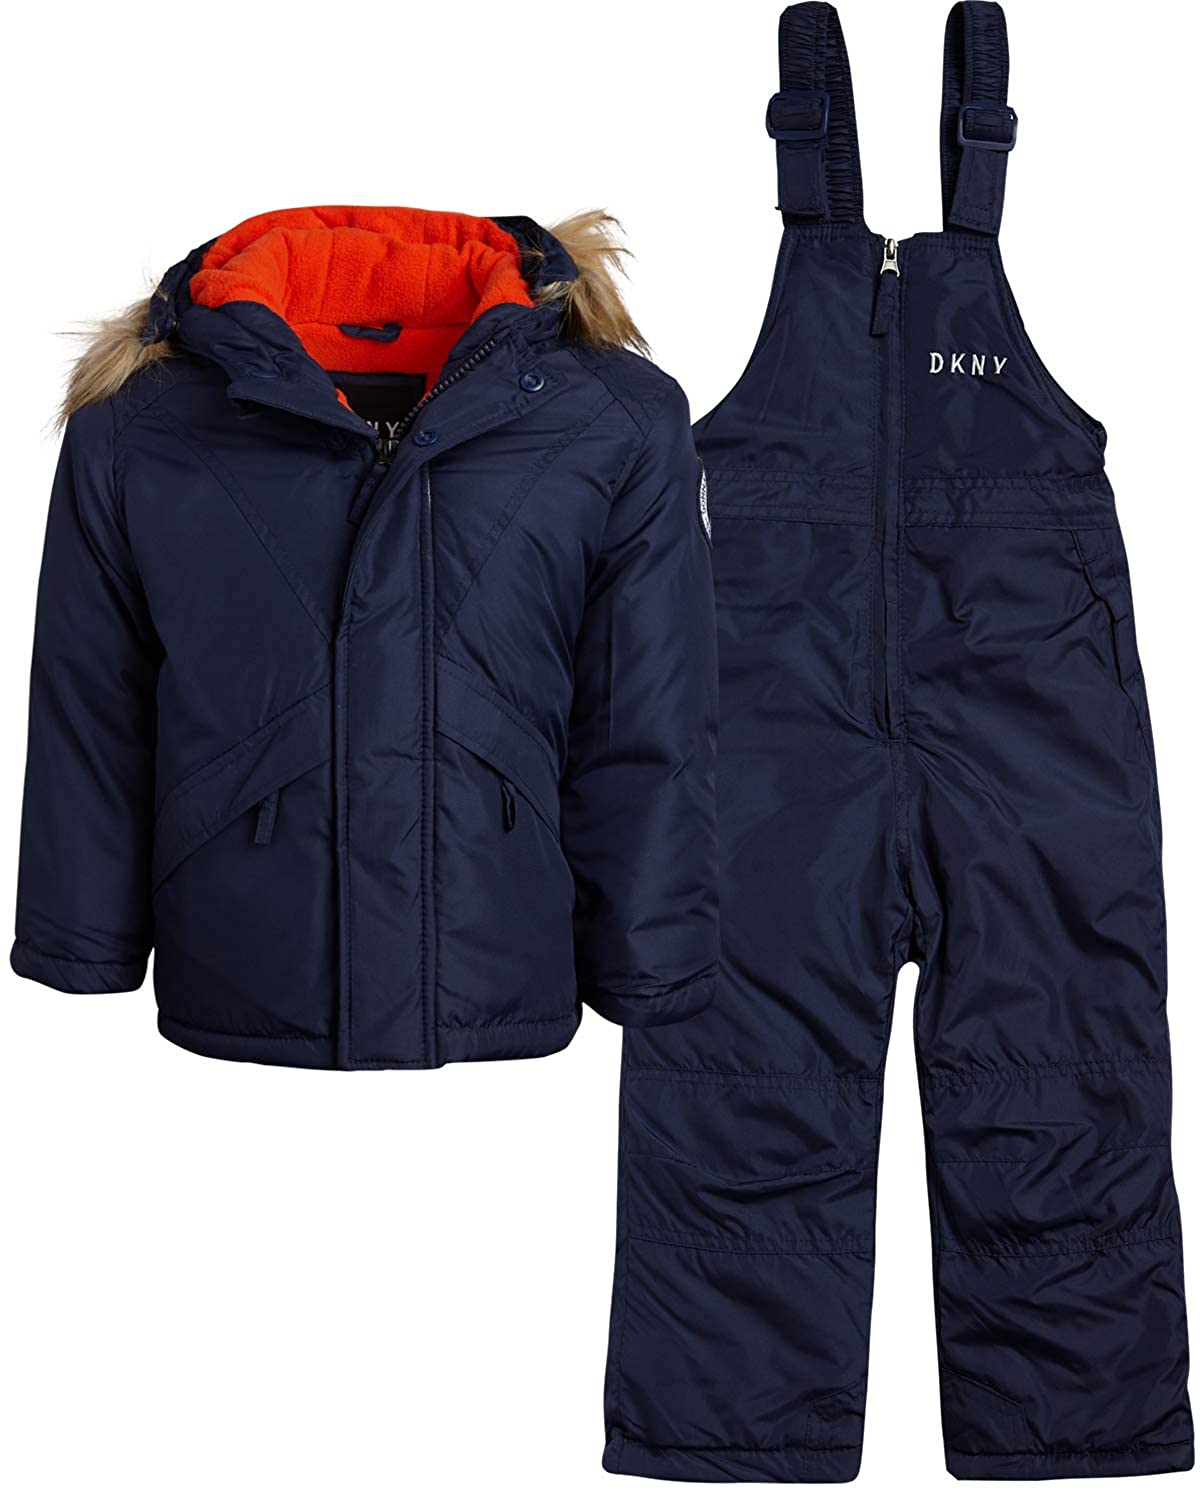 DKNY Boys 2-Piece Puffer Ski Jacket and Insulated Snowbib Snowsuit Set Infant//Toddler